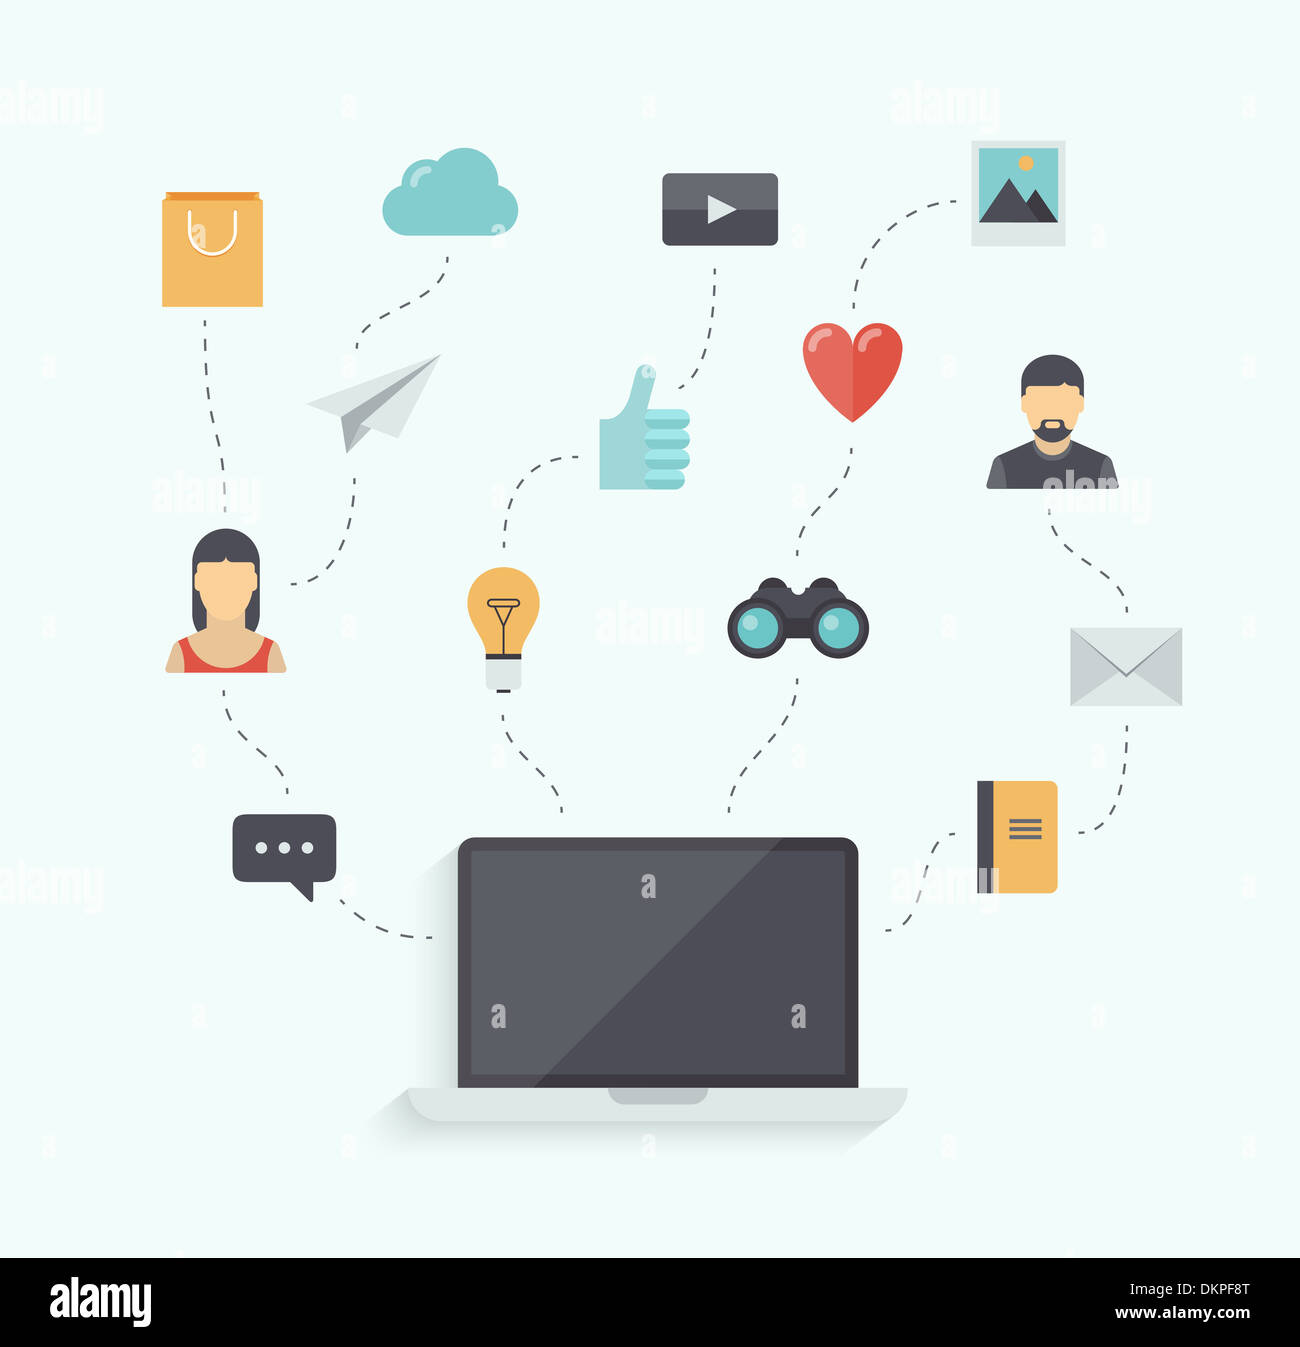 Flat design  illustration concept of using modern communication technology with stylish laptop and icons connection elements - Stock Image